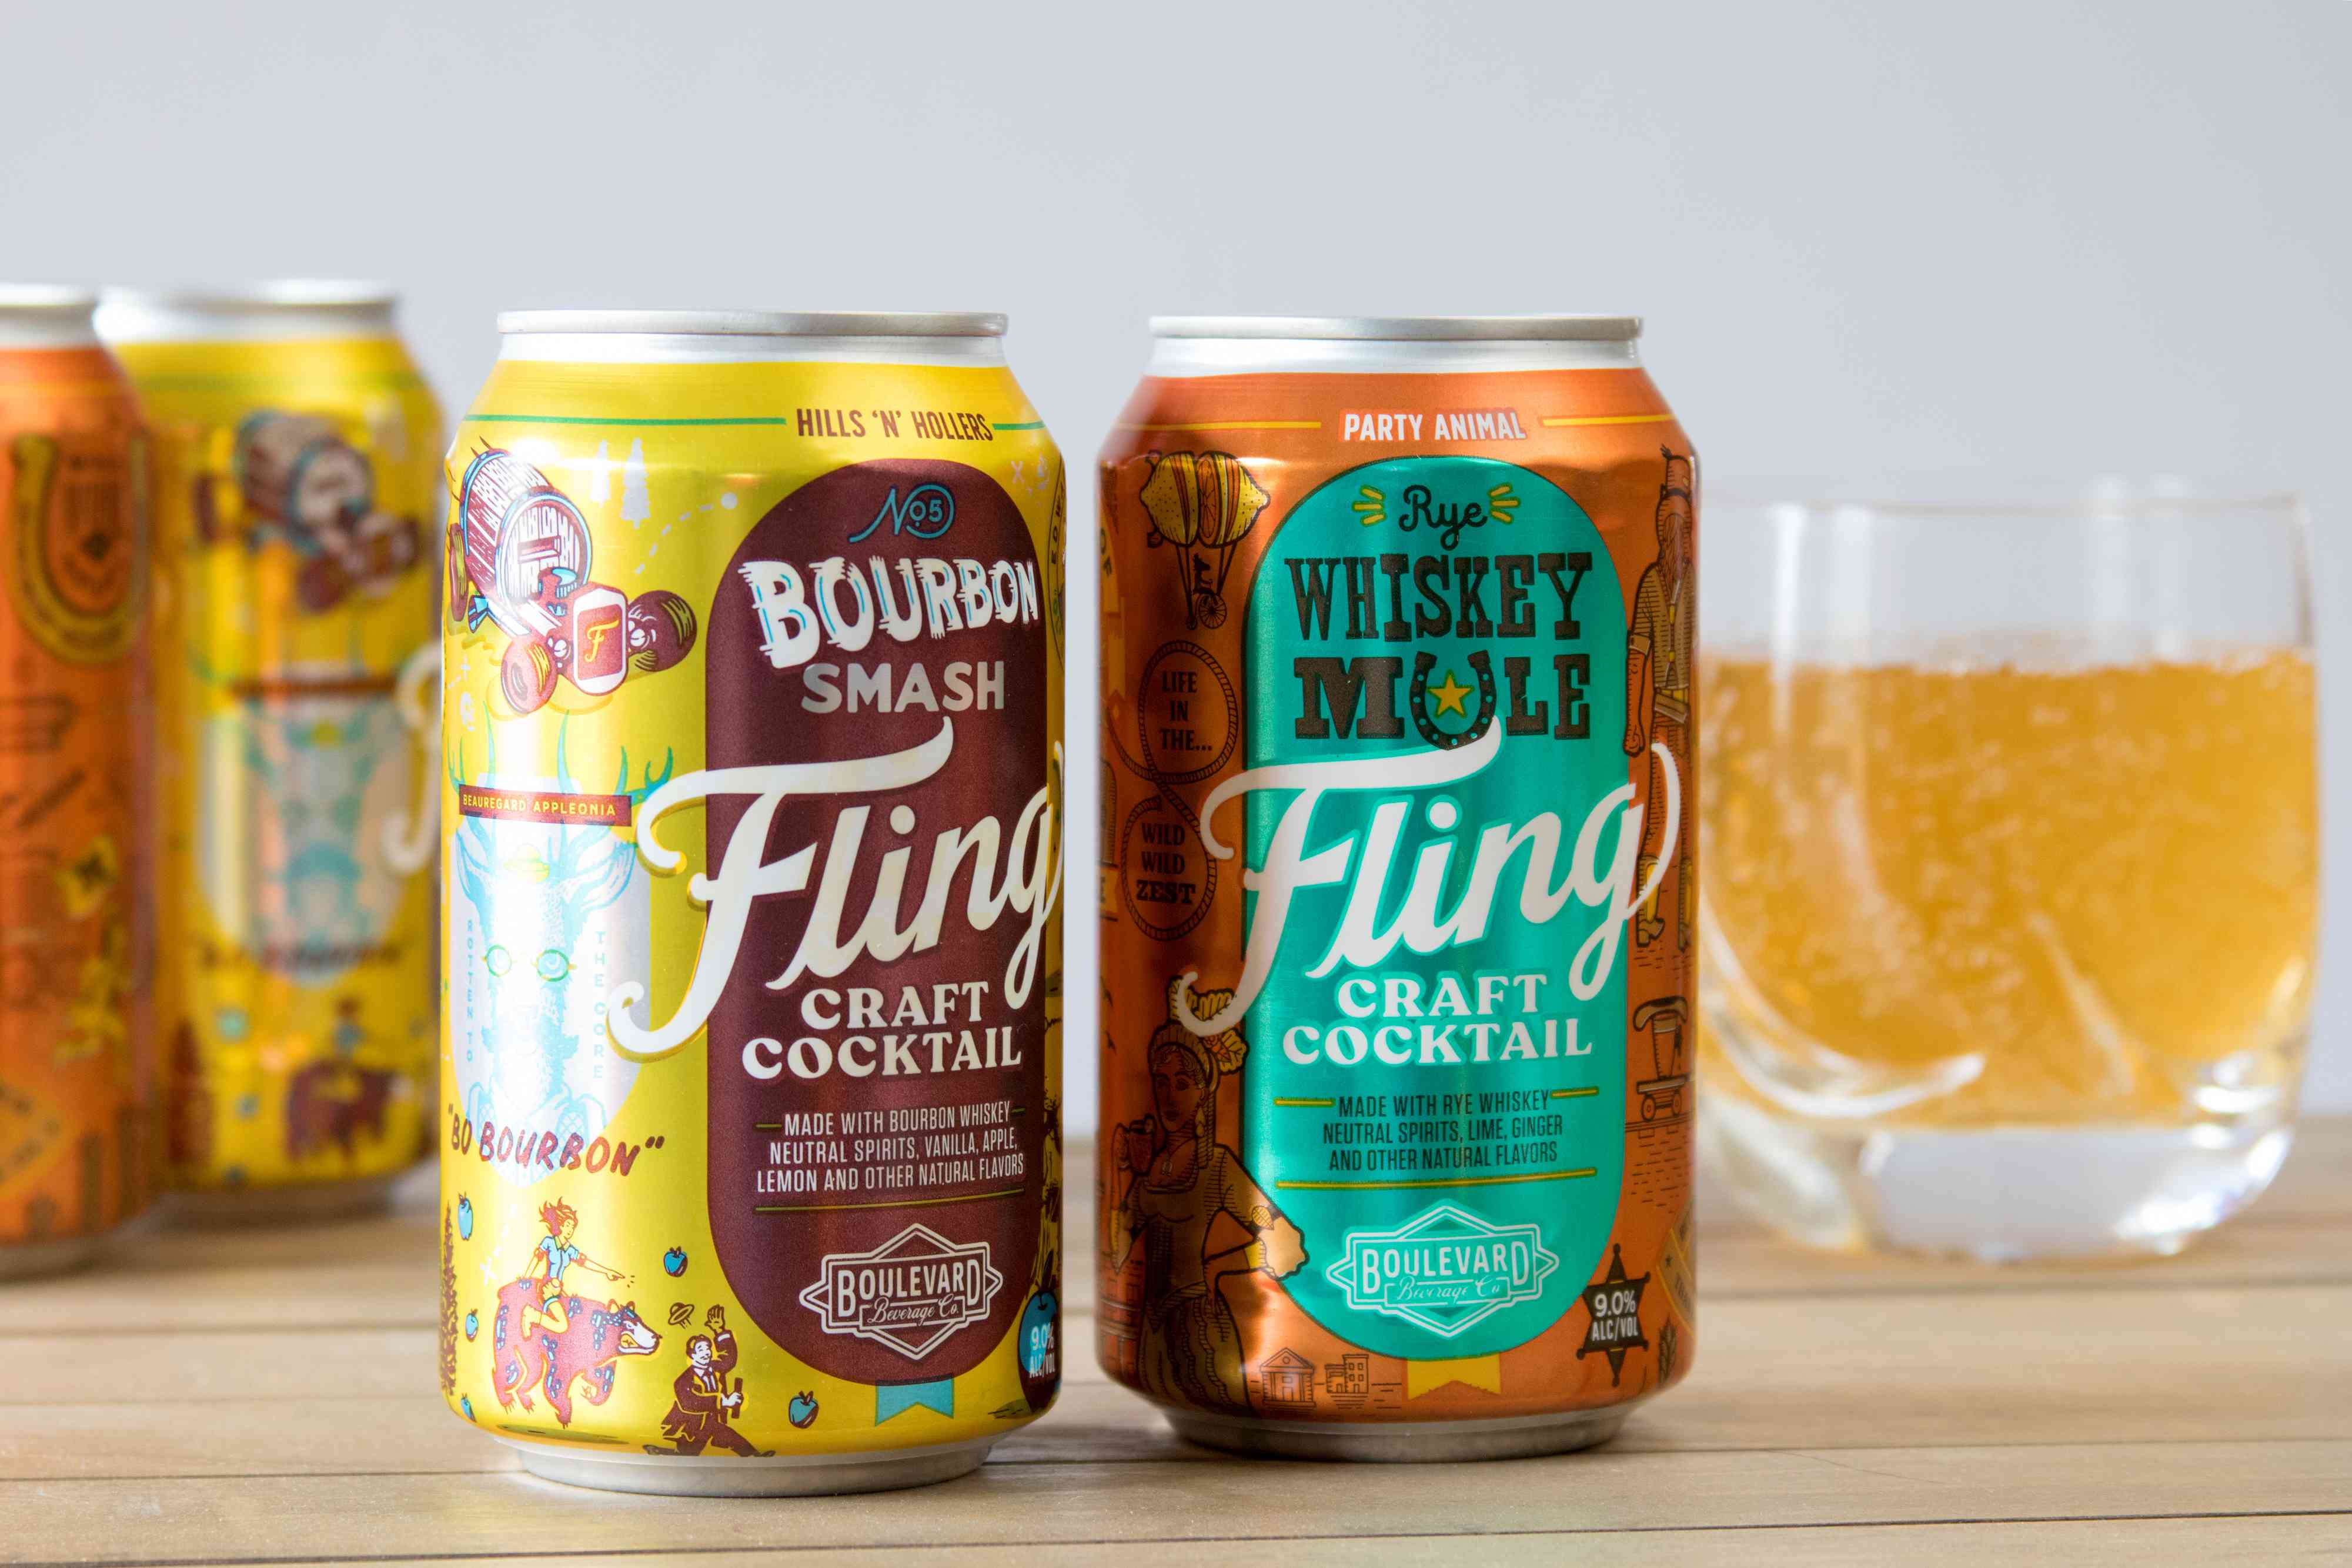 Fling Craft Cocktail by Boulevard Brewing Co.